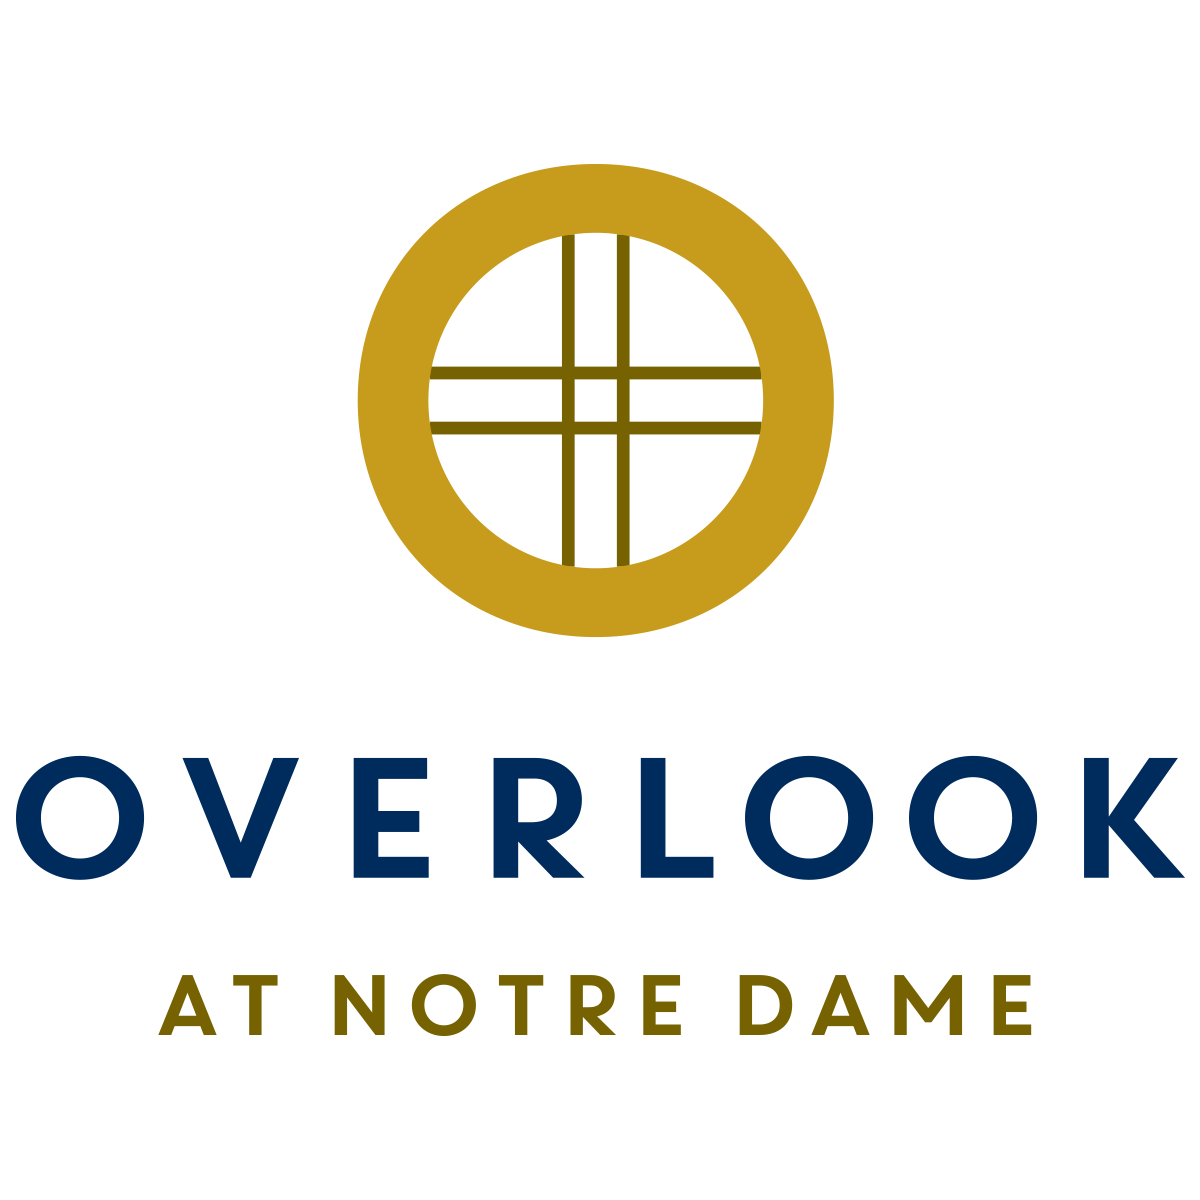 Overlook at Notre Dame